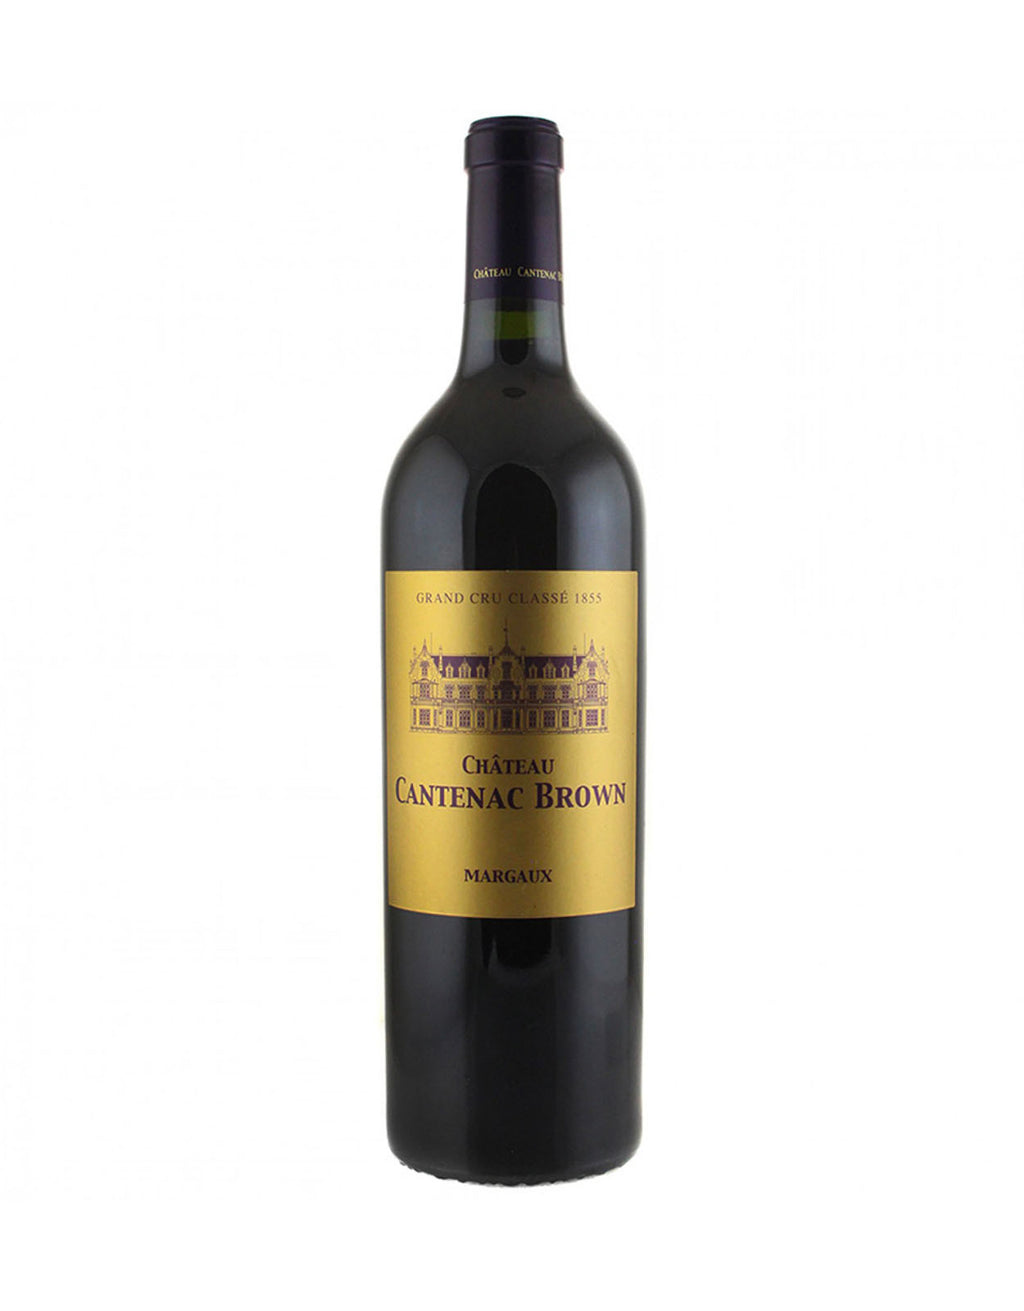 Chateau Cantenac Brown 2009